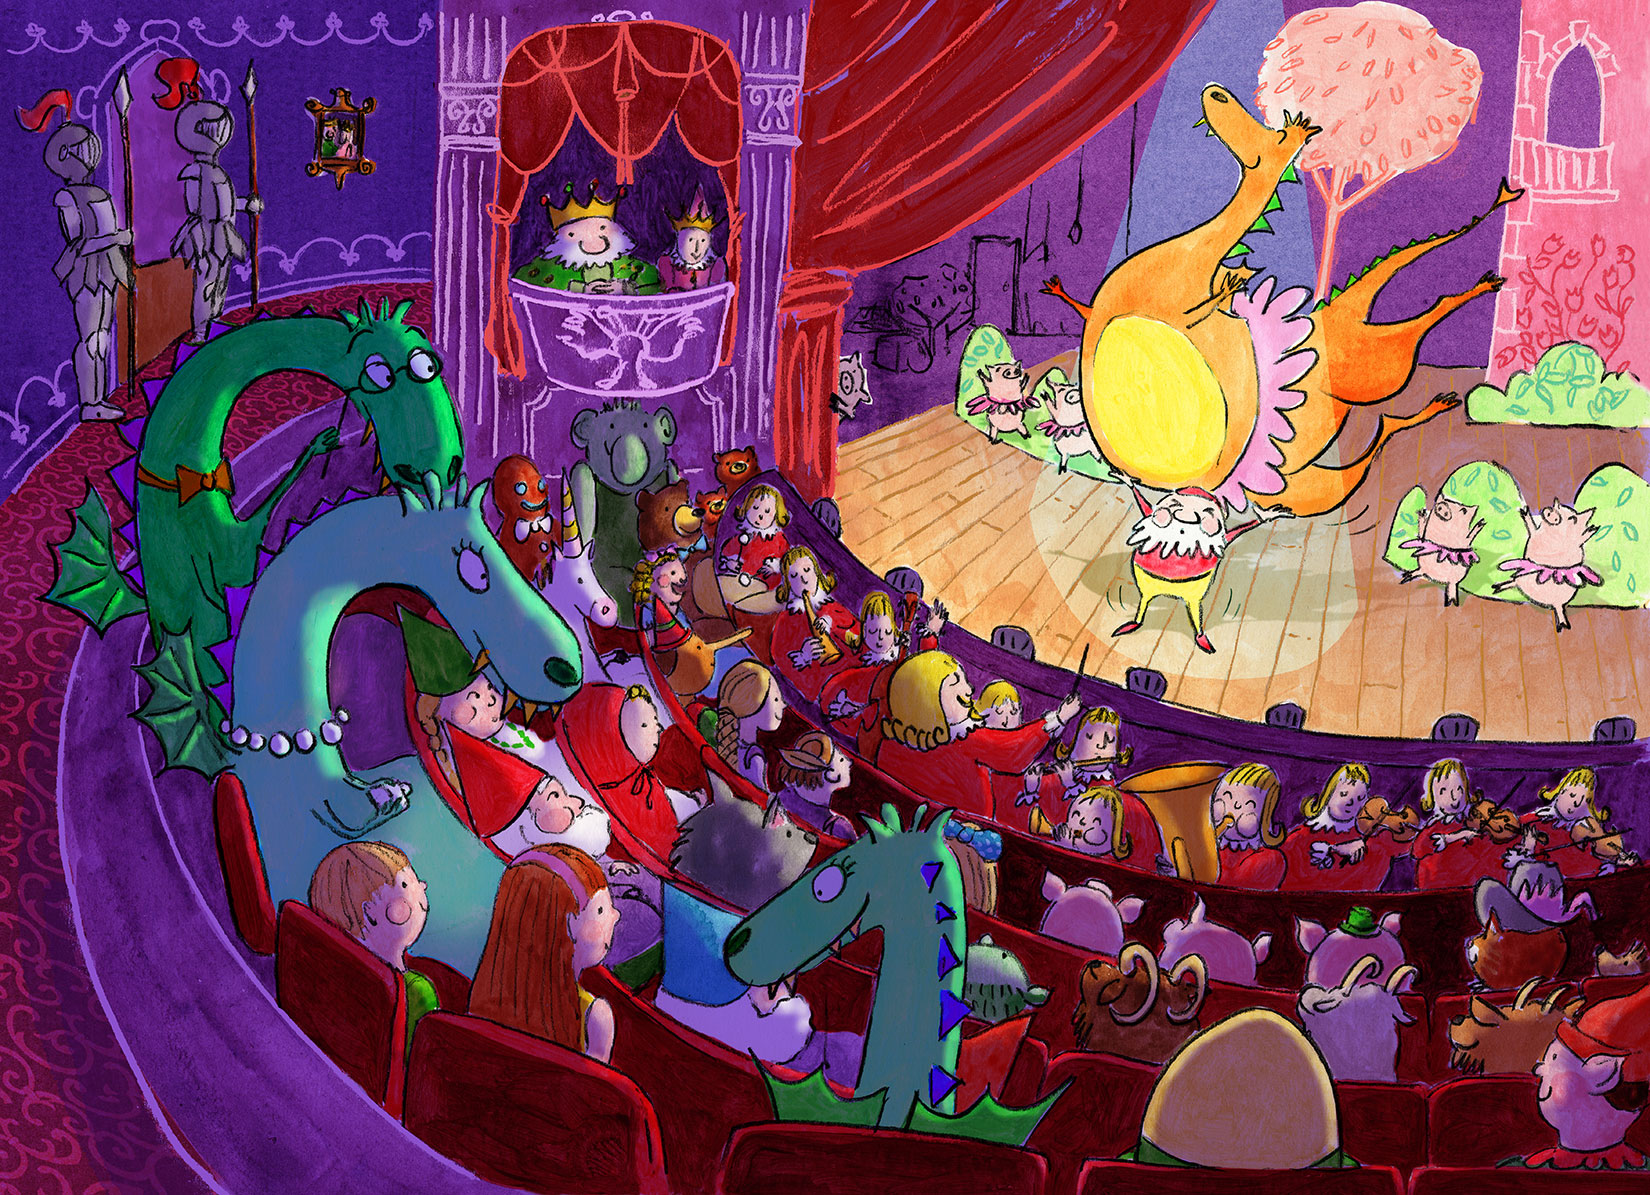 A theatre filled with fairytale characters, on stage is a ballet with a huge dragon lifted up by a gnome.